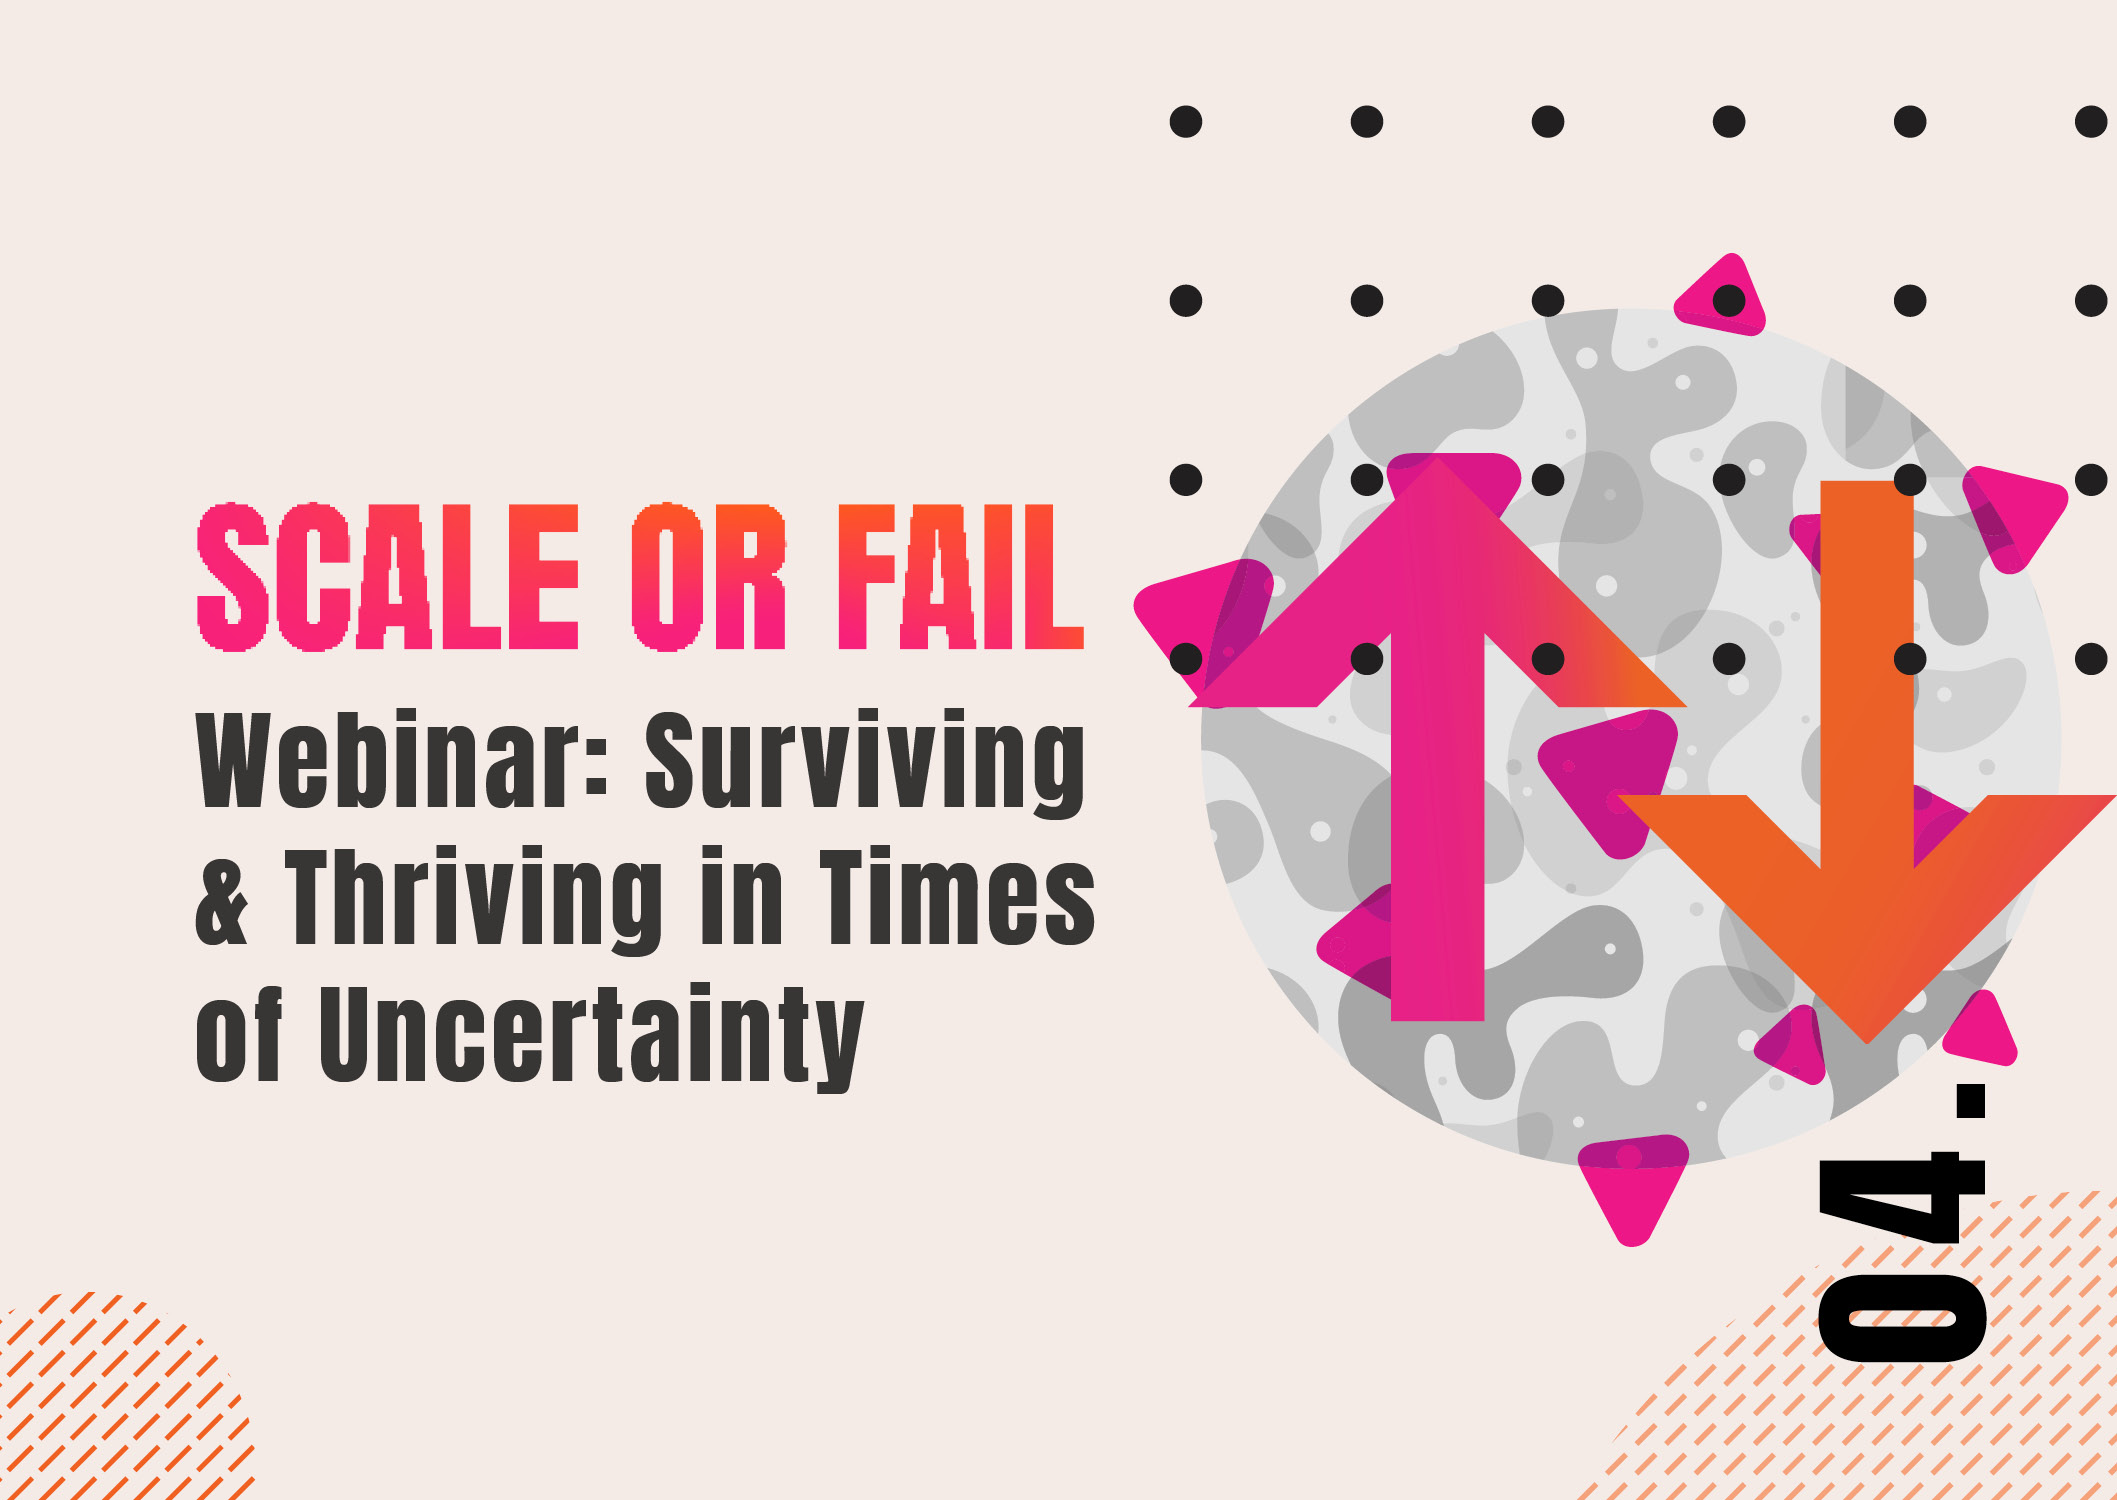 25/03/20 Webinar – Surviving and Thriving in Times of Uncertainty